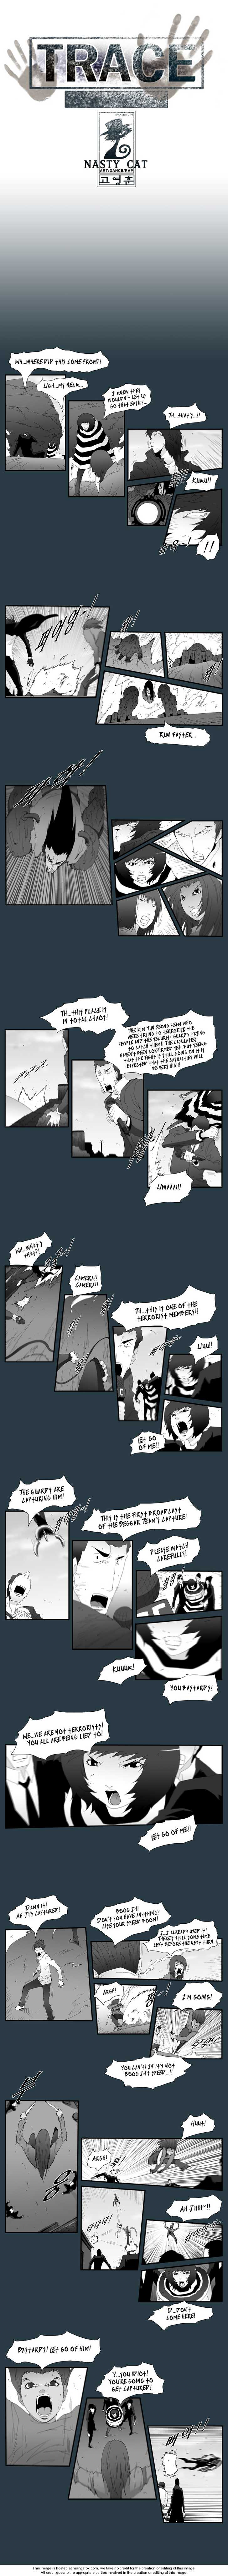 Trace 10 Page 1